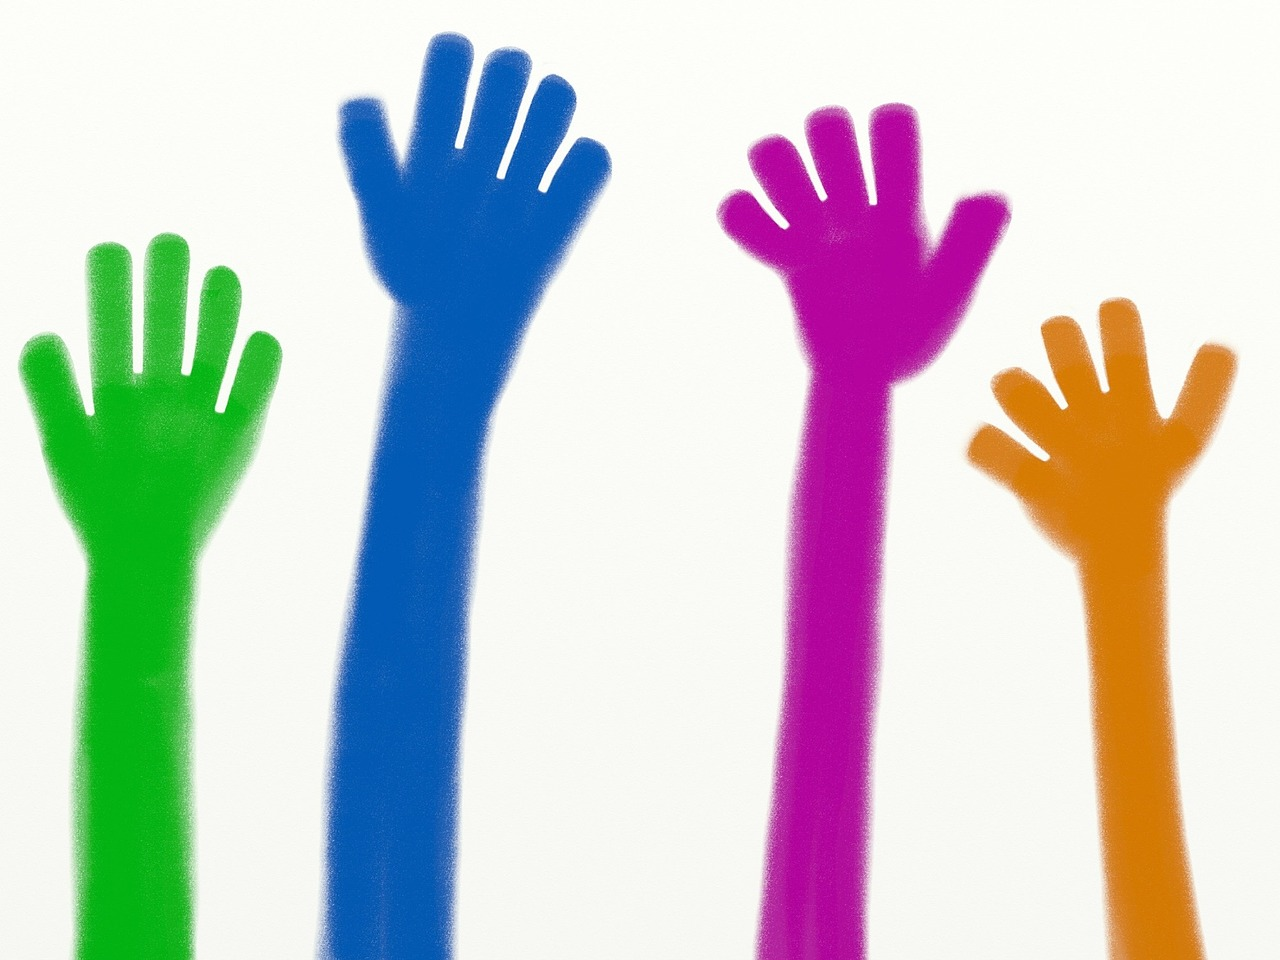 Cartoon hands in green, blue, purple, and brown raised in the air.